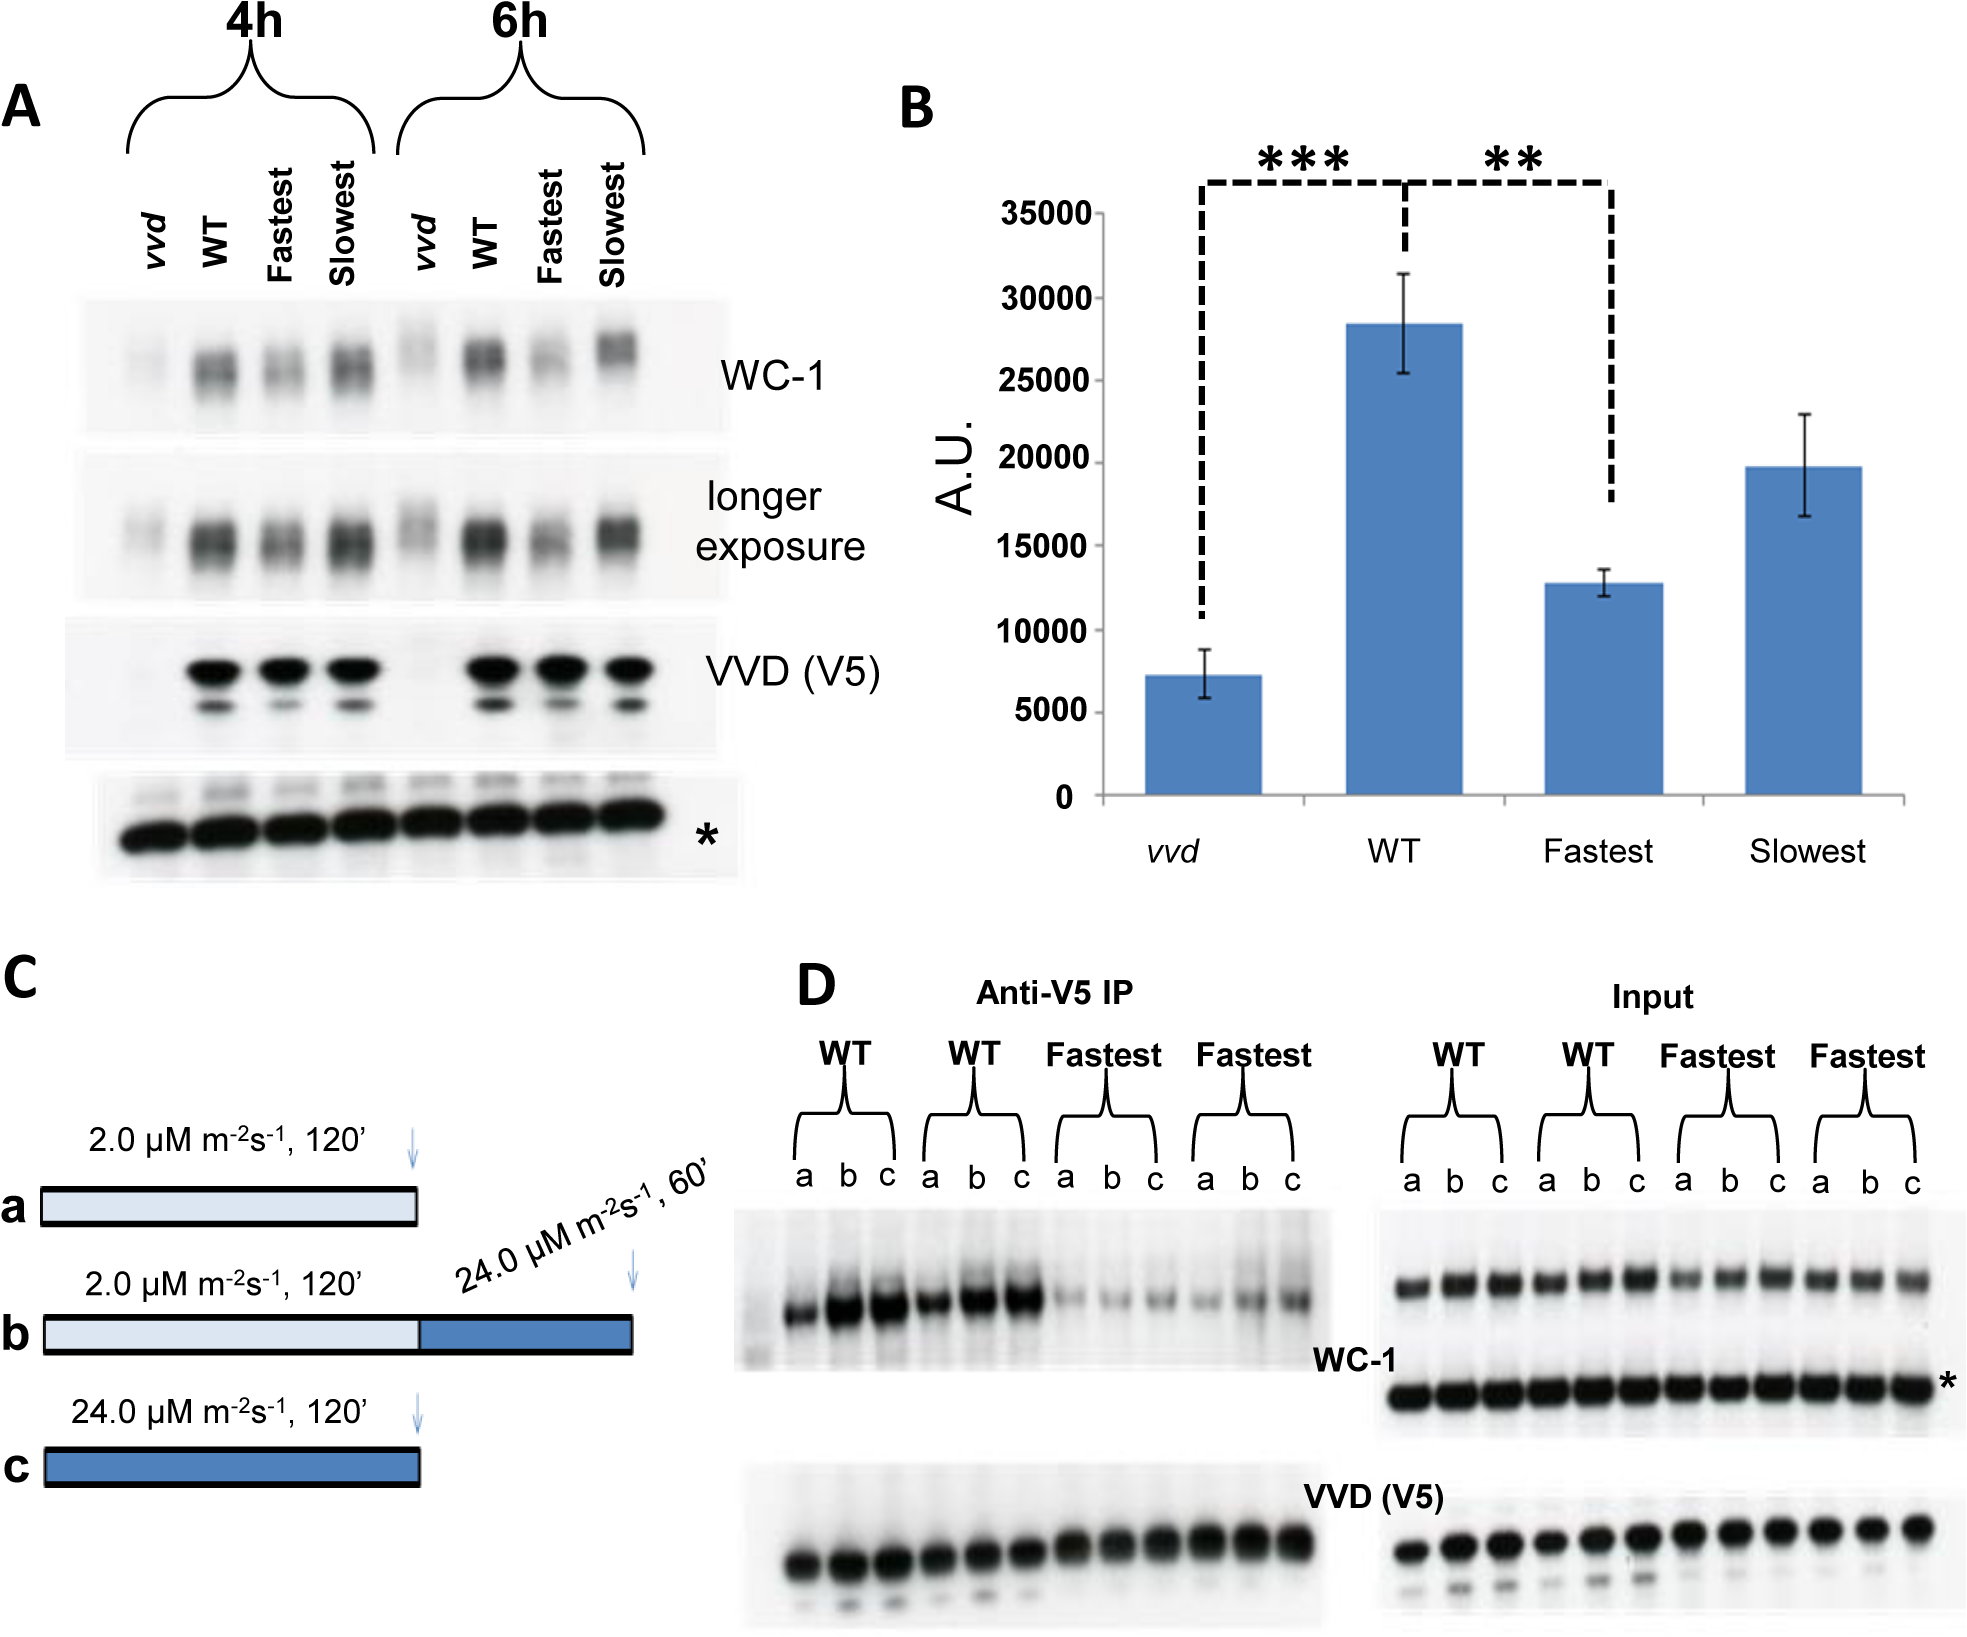 Reduced VVD-WCC interaction influences WC-1 stability in the fastest photocycle mutant and the system's ability to respond to changing light intensity.